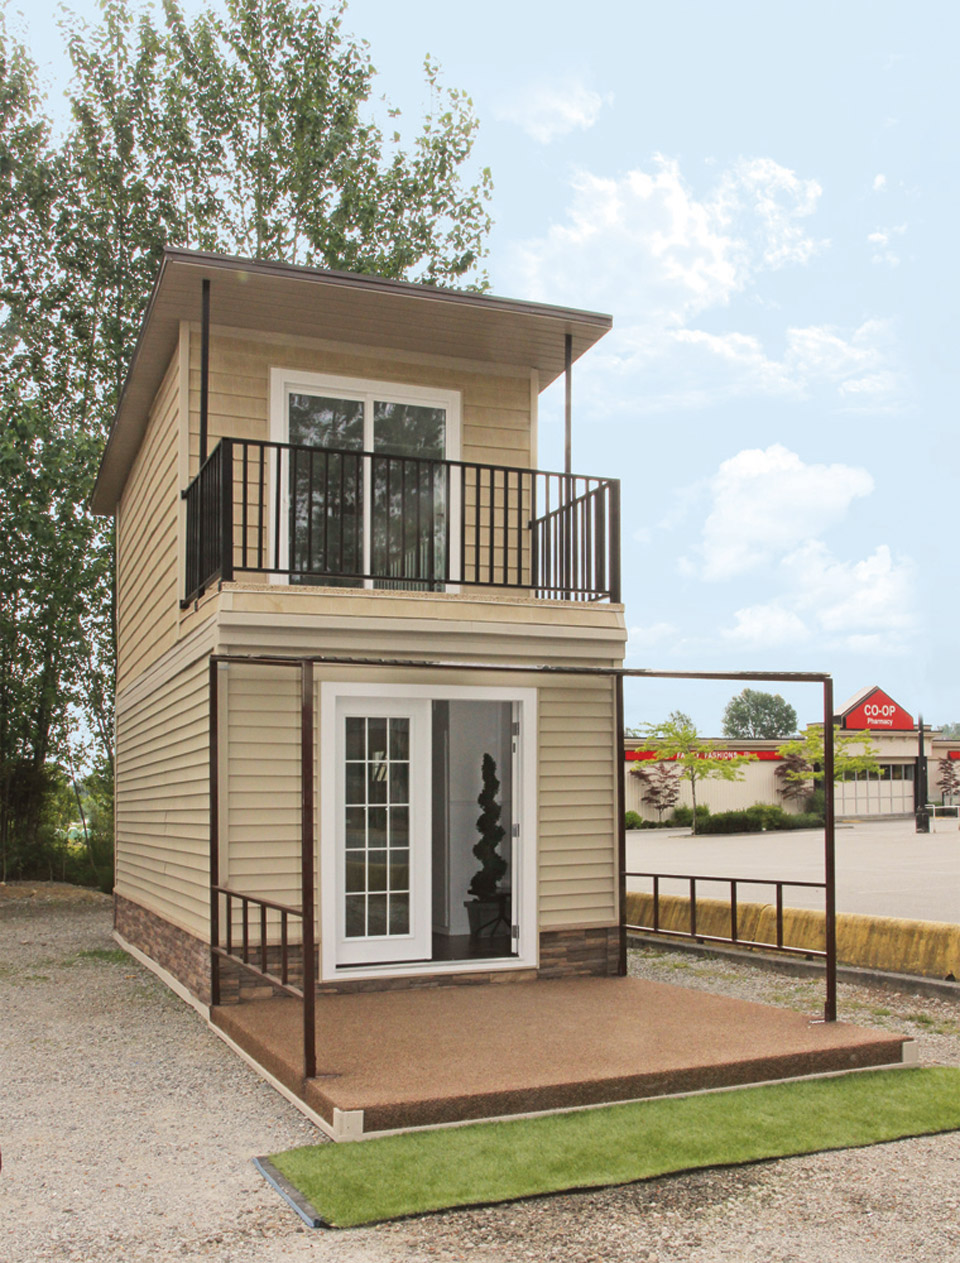 two story balcony The Eagle 1 A 350 Sq Ft 2 Story Steel Framed Micro Home